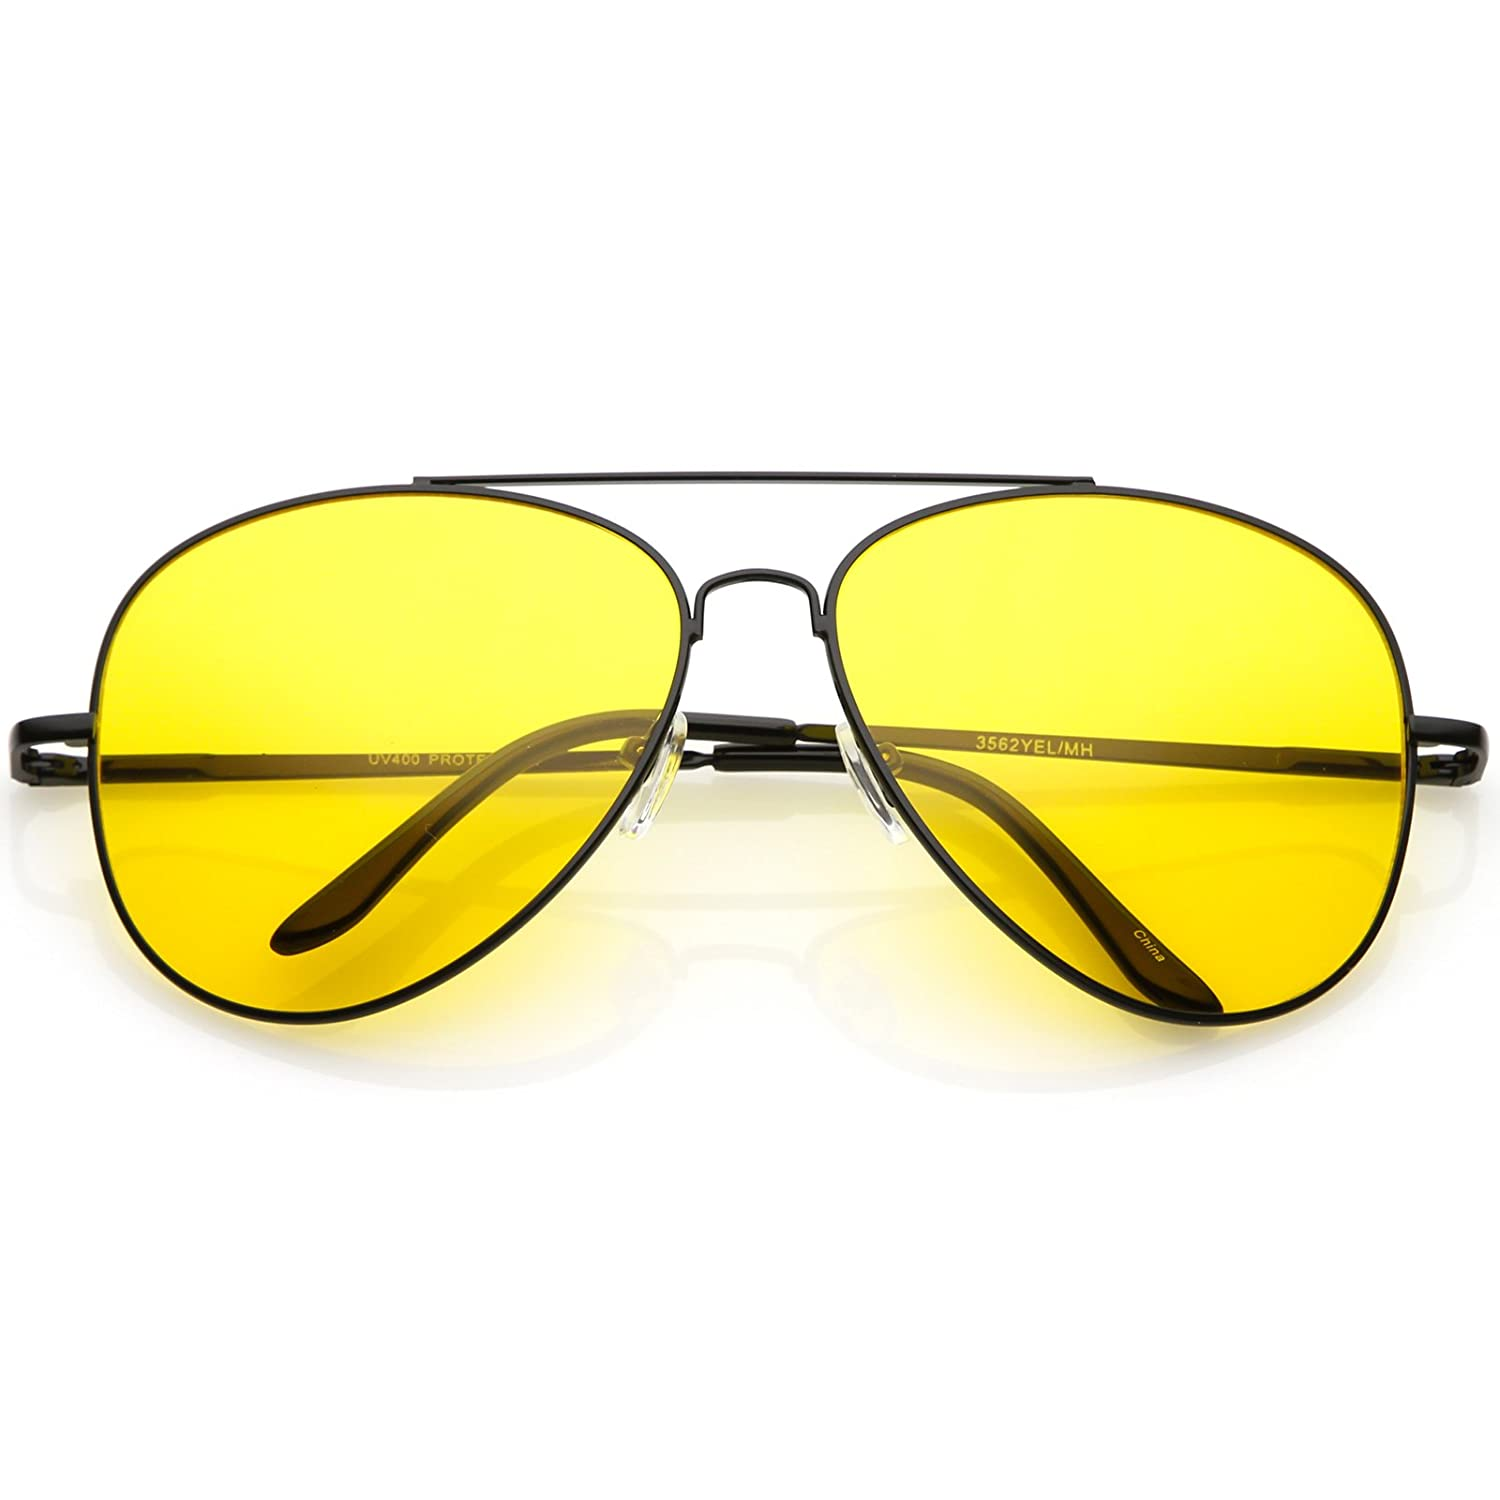 601ac0f228 Amazon.com  sunglassLA - Large Aviator Night Driving Glasses for Men Women  with Yellow Tinted Lens 61mm (Black Yellow)  Clothing